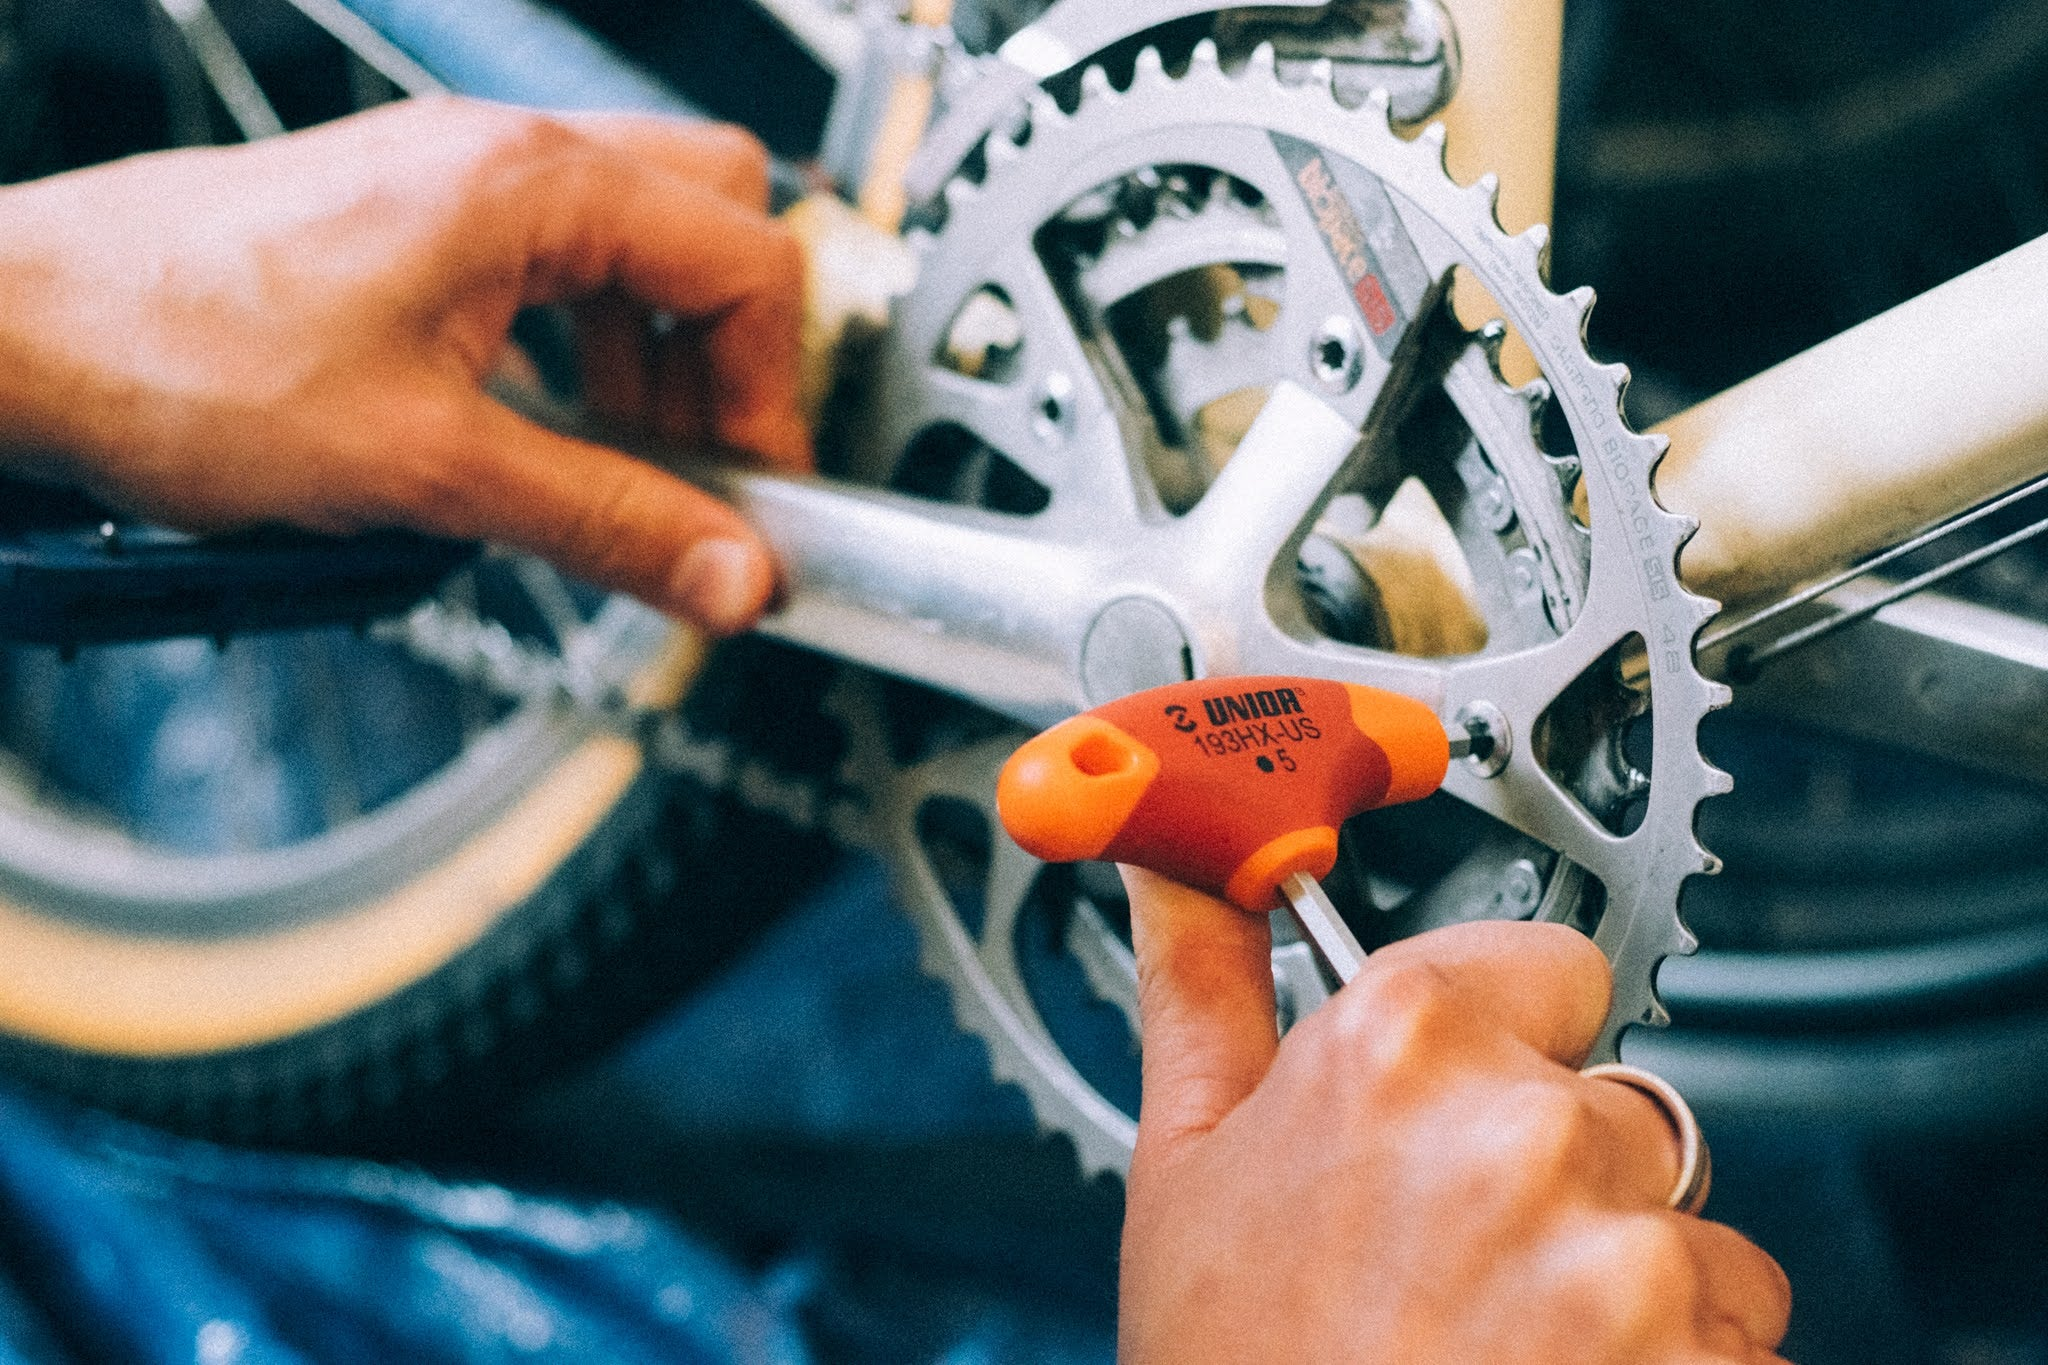 Keep your chainring bolts tight.